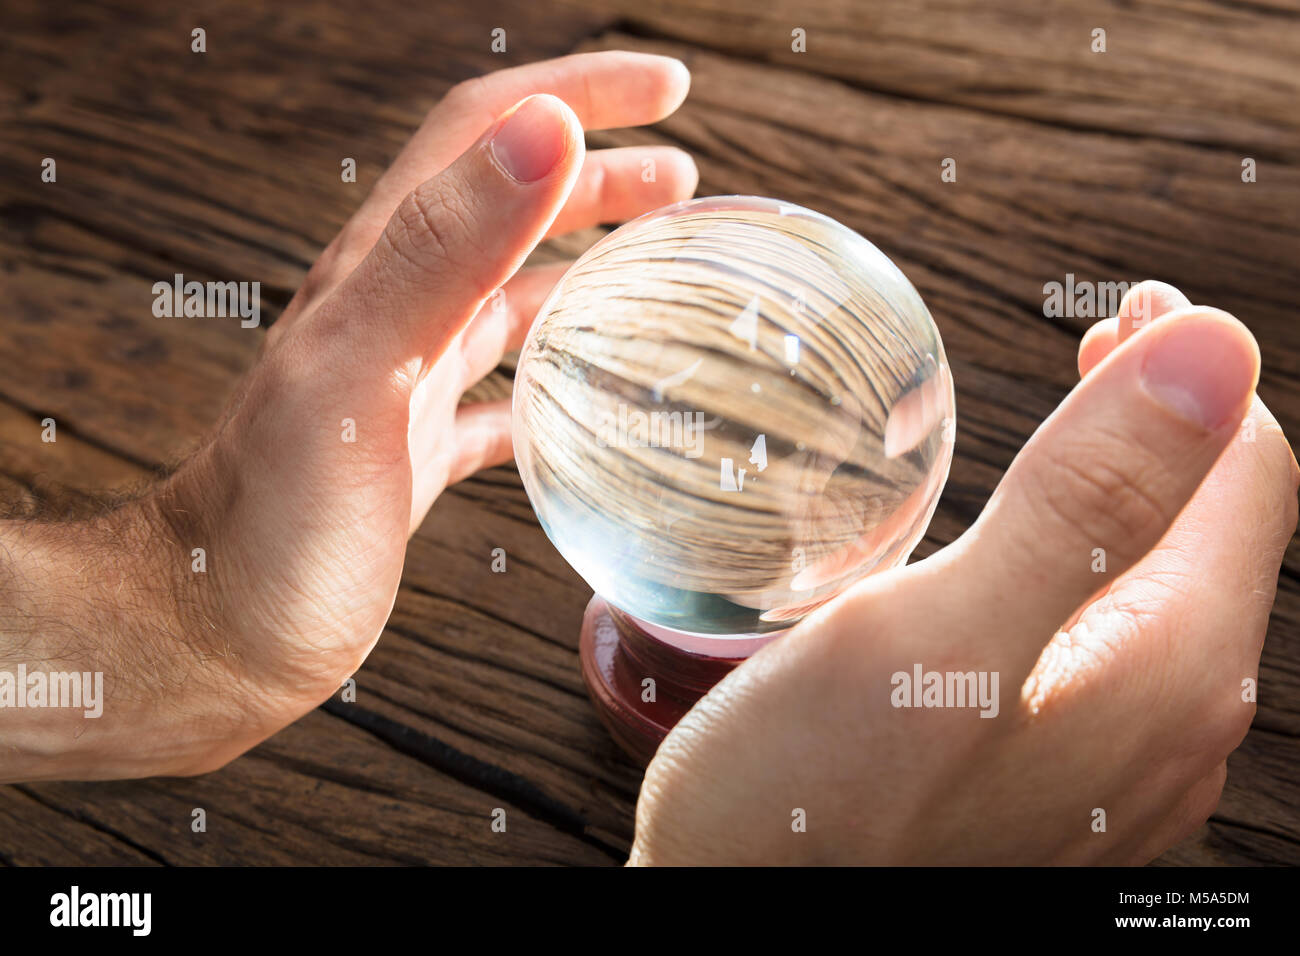 Businessman fortune telling and predicting future at wooden table - Stock Image